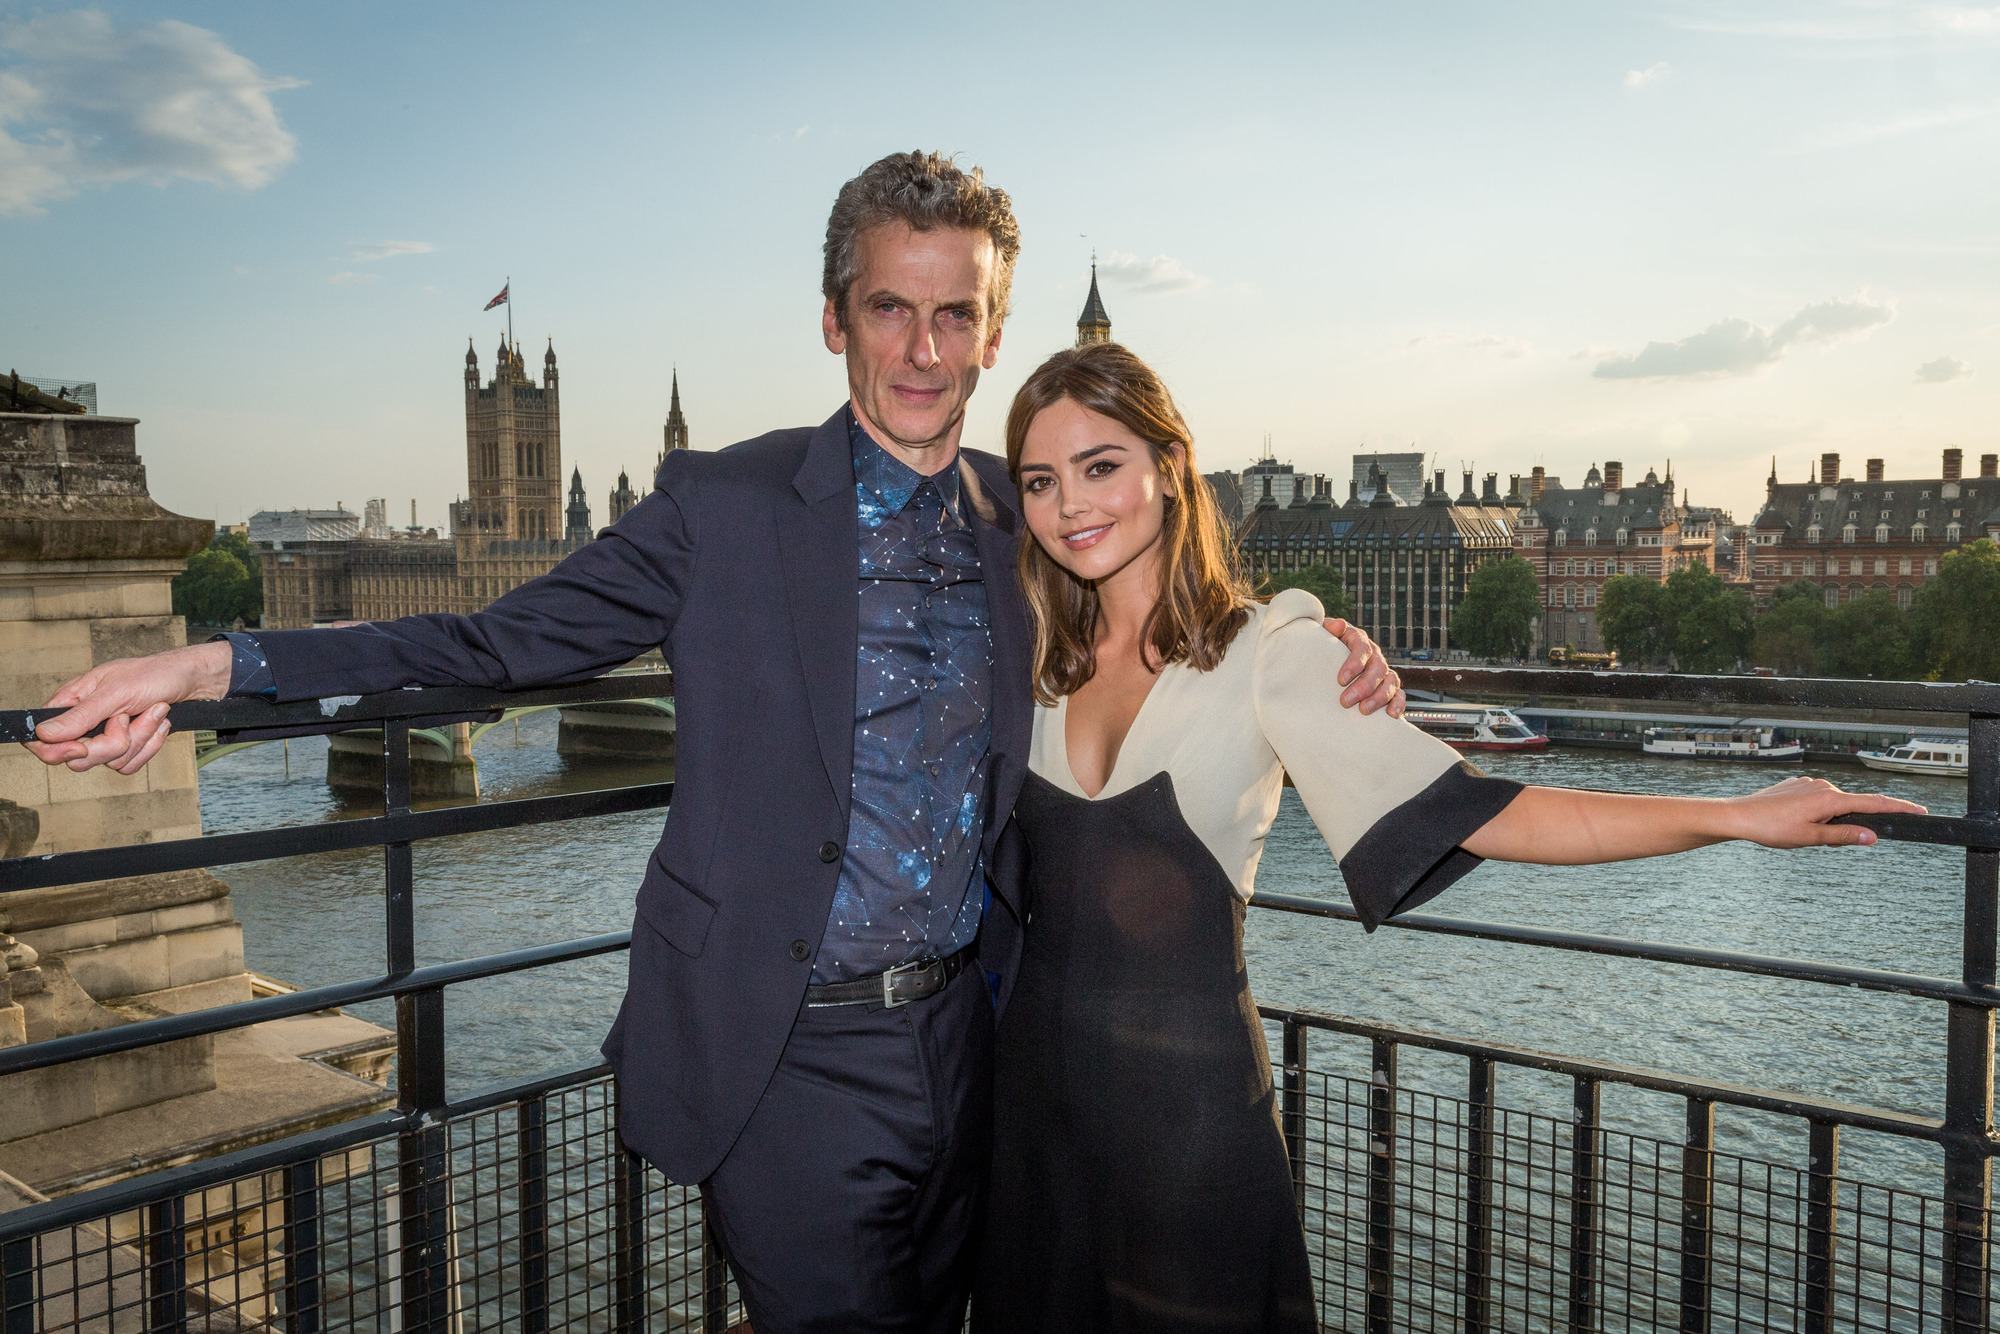 Doctor Who episode 1: How did Peter Capaldi do in Deep Breath, his debut episode ?